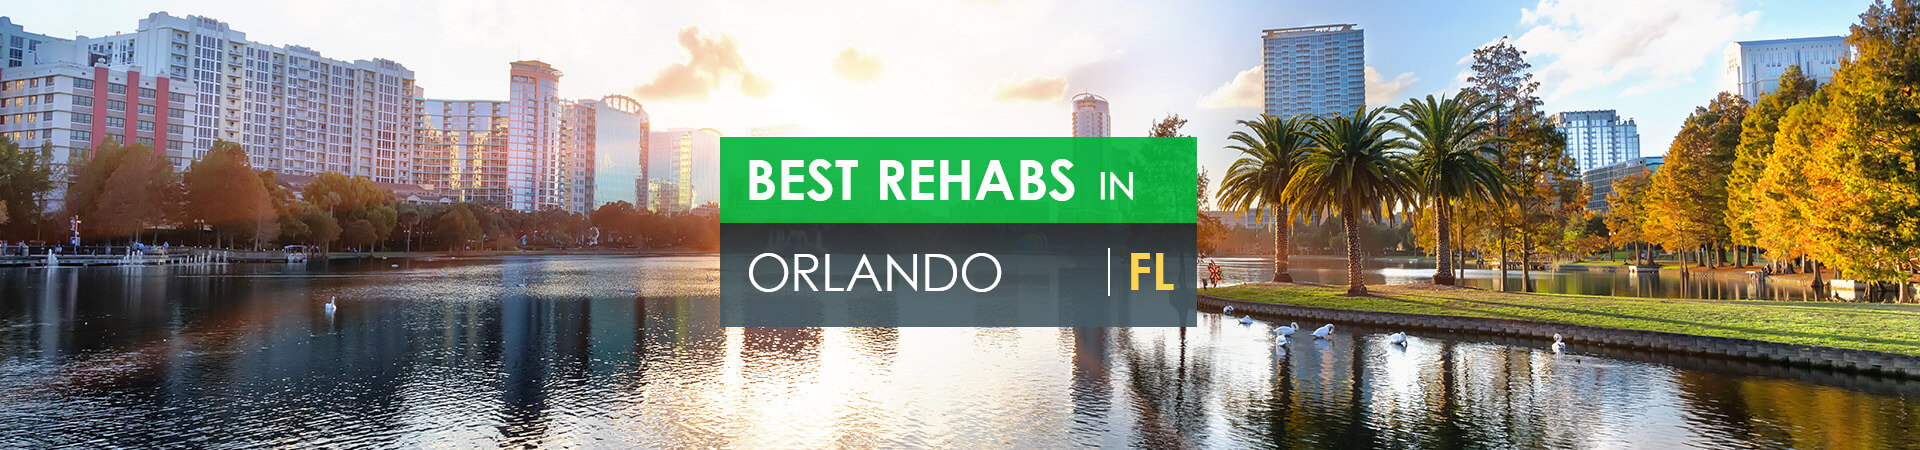 Best rehabs in Orlando, FL